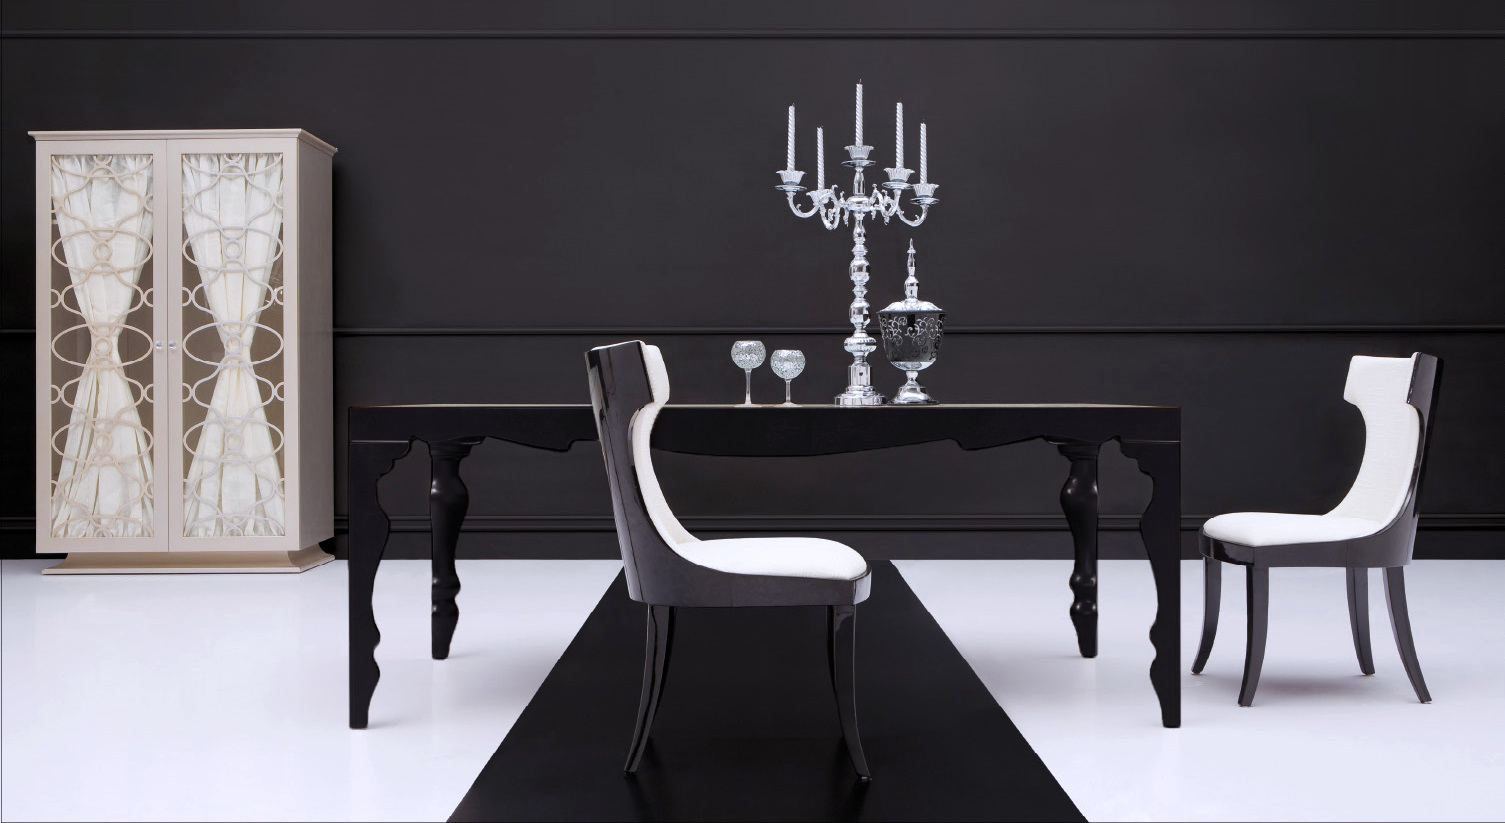 Black Dining Table Contemporary Dining Table Roma : Modern Dining Table Roma Black2 rev from www.theinteriorgallery.com size 1505 x 823 jpeg 397kB